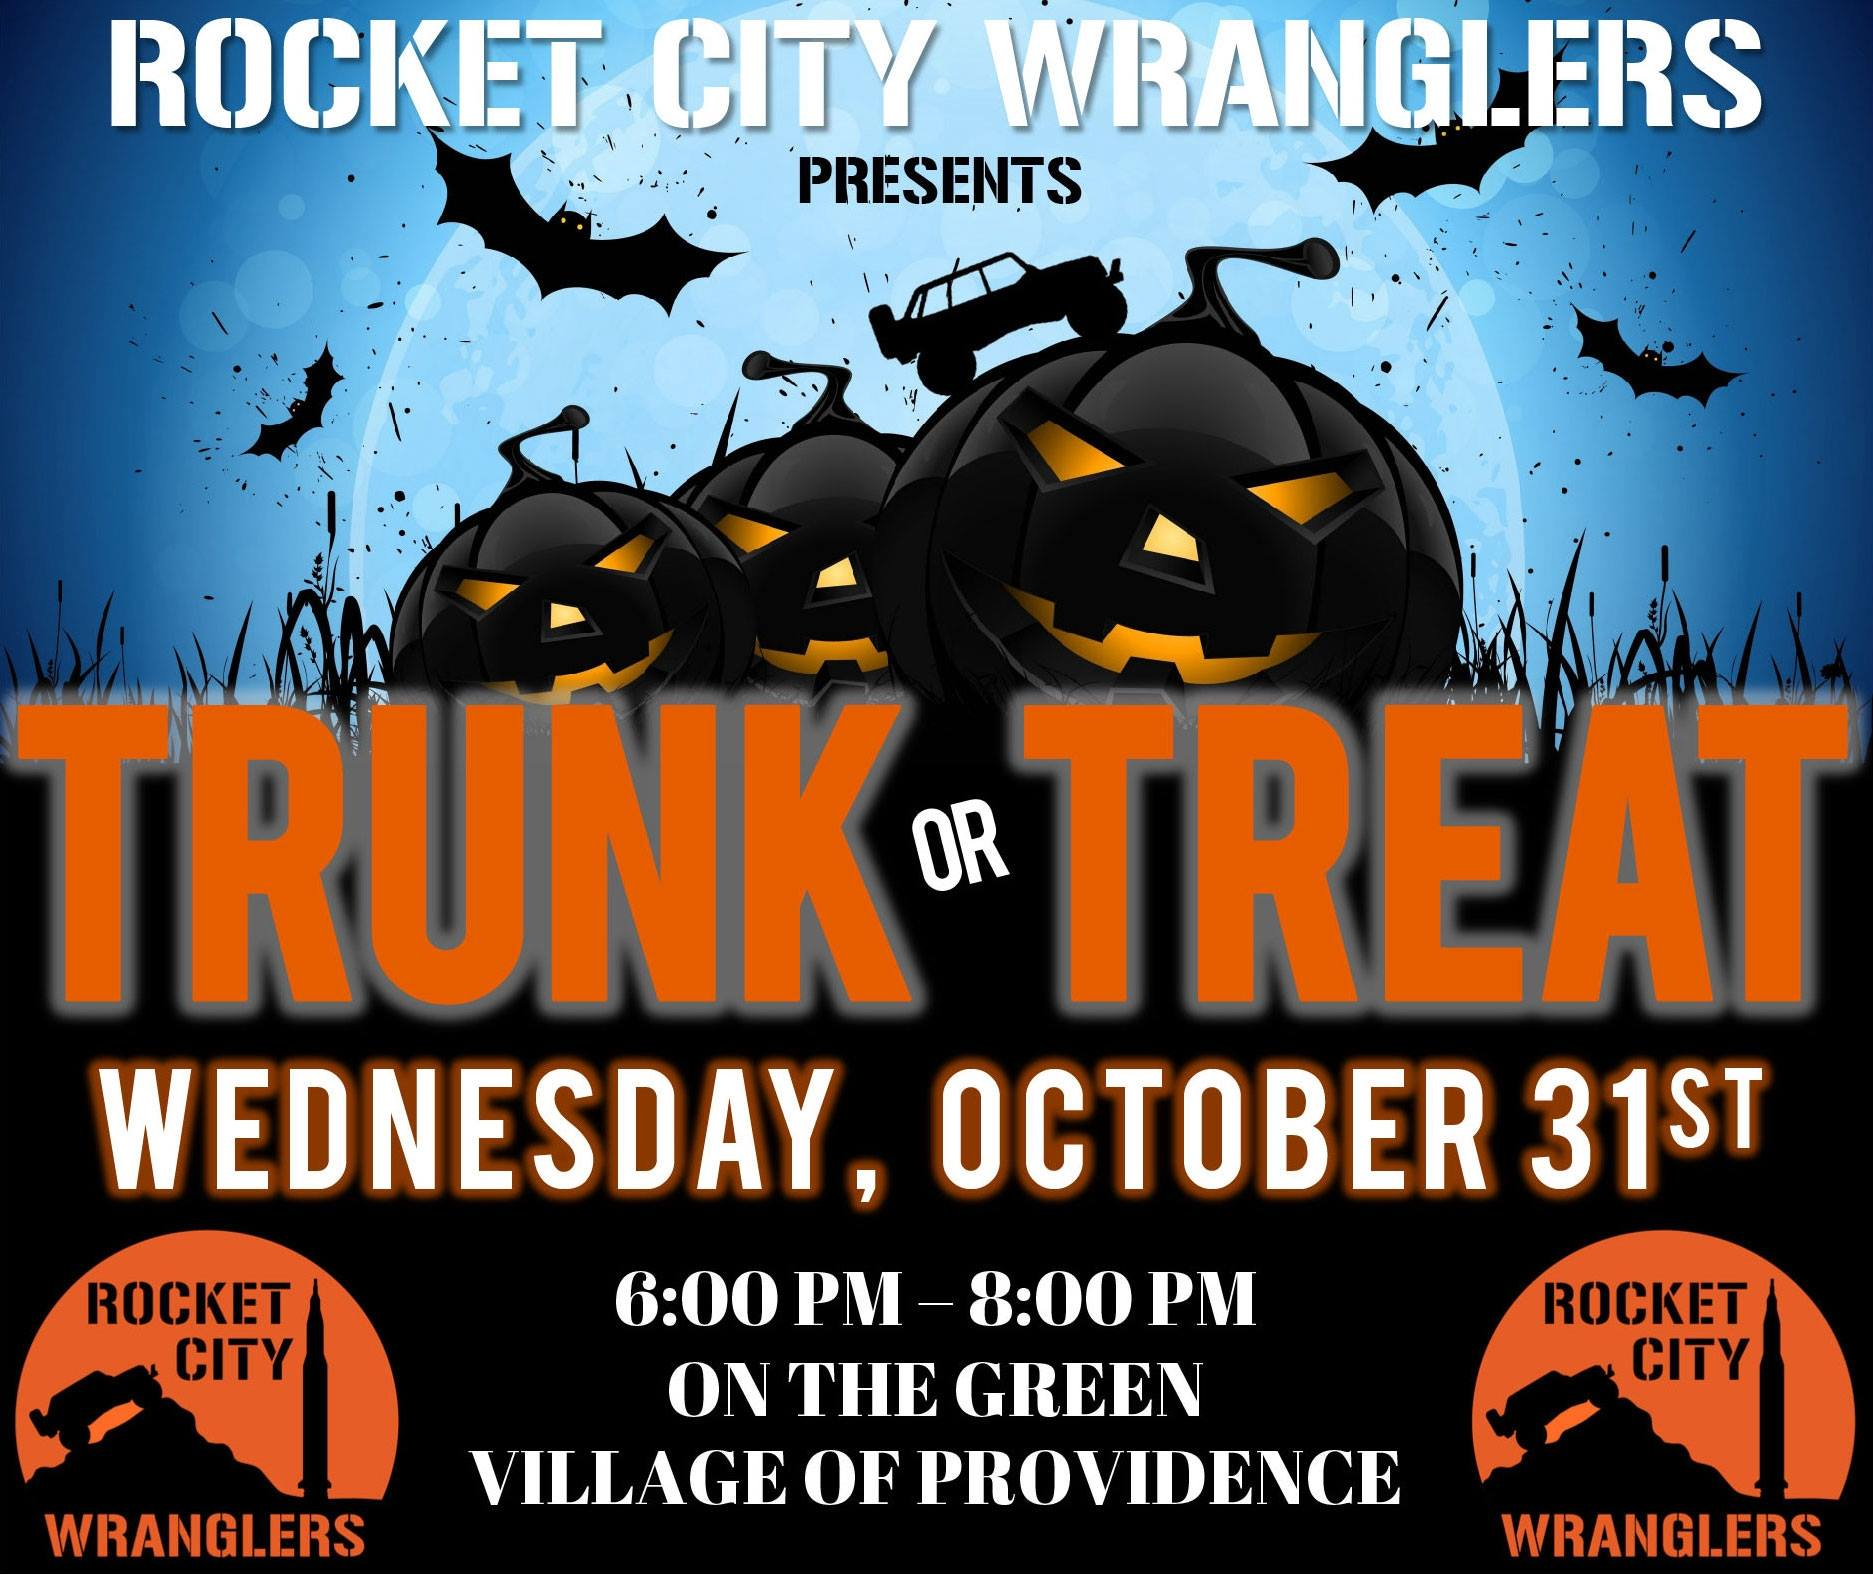 Rocket City Wranglers Trunk Or Treat